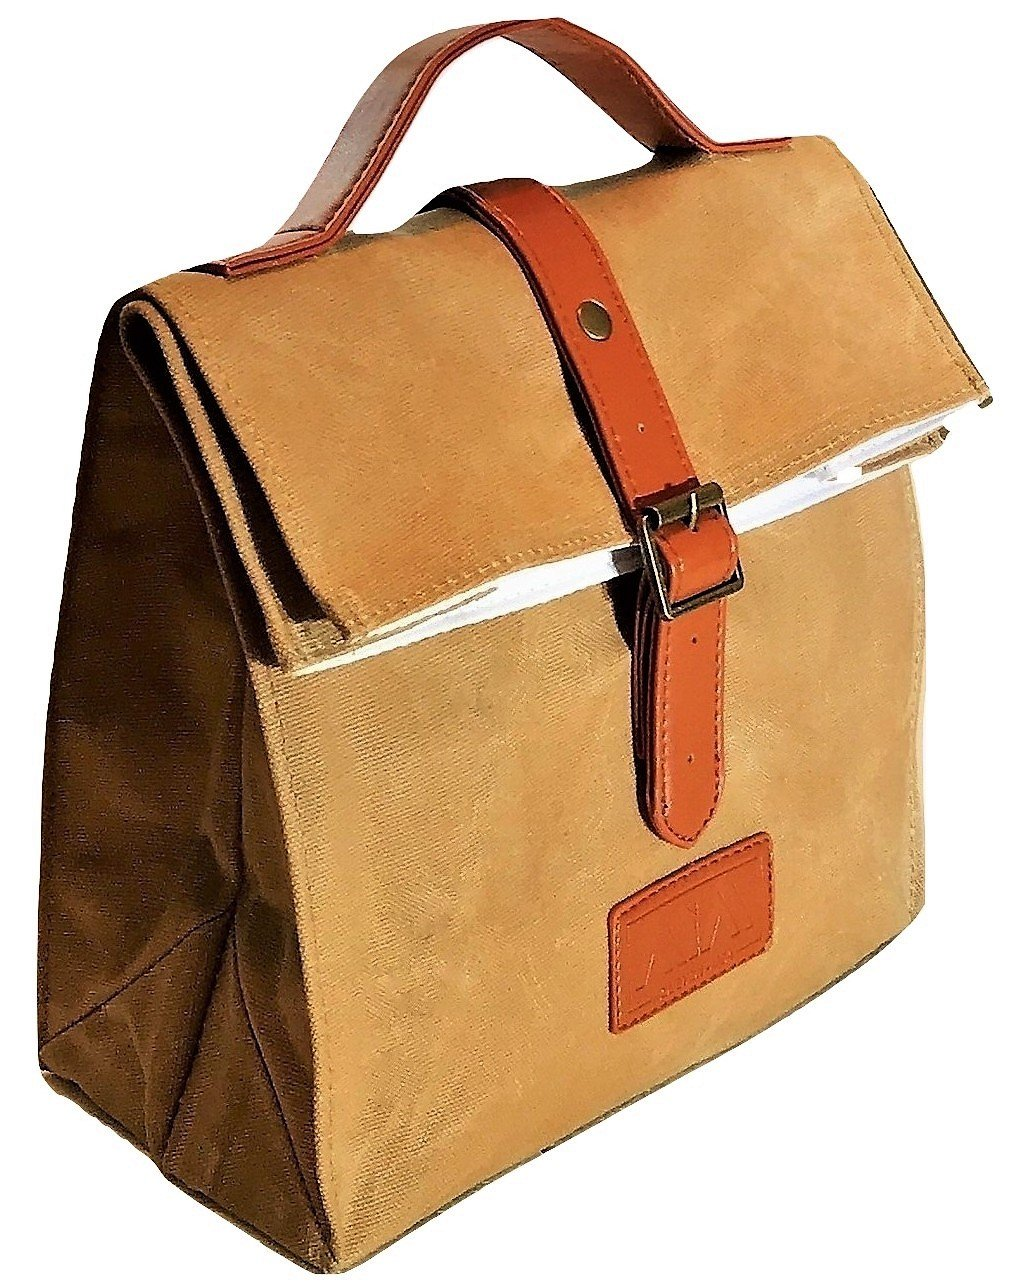 Waxed canvas lunch tote for him or her